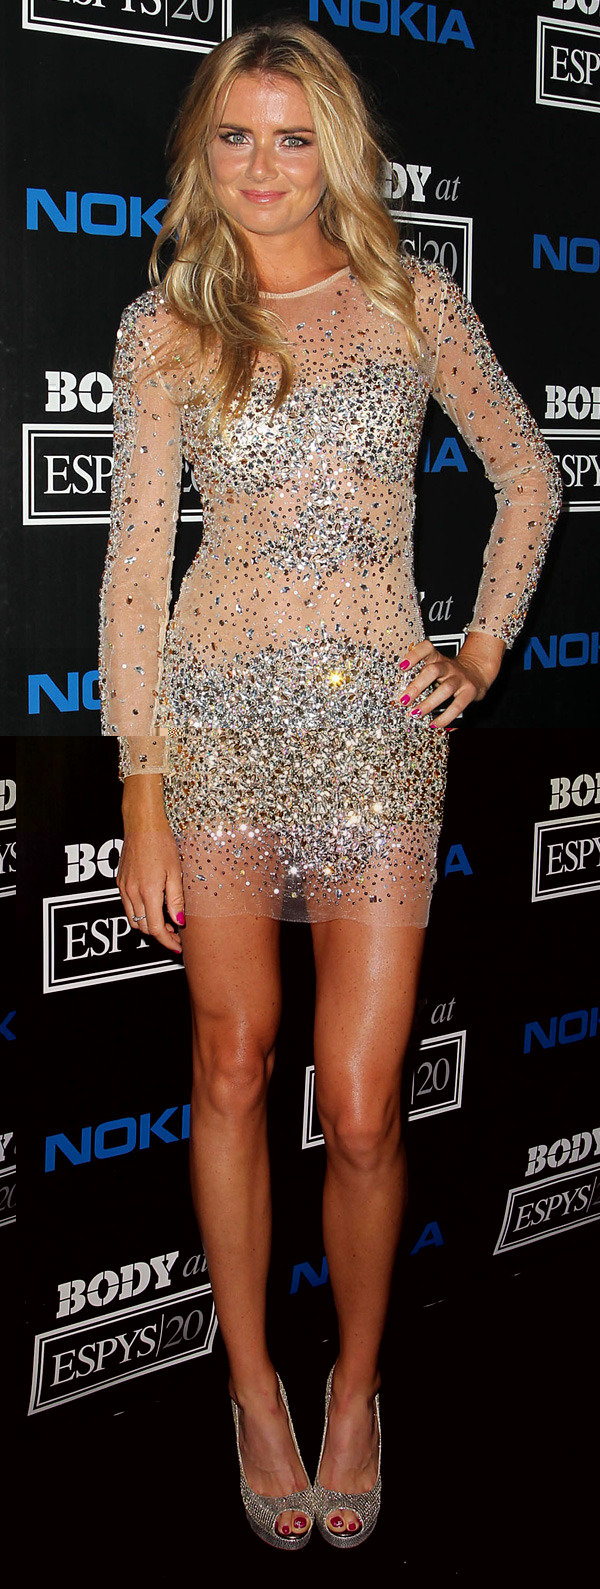 Daniela Hantuchova At Espn Celebrated &Quot;body Issue""